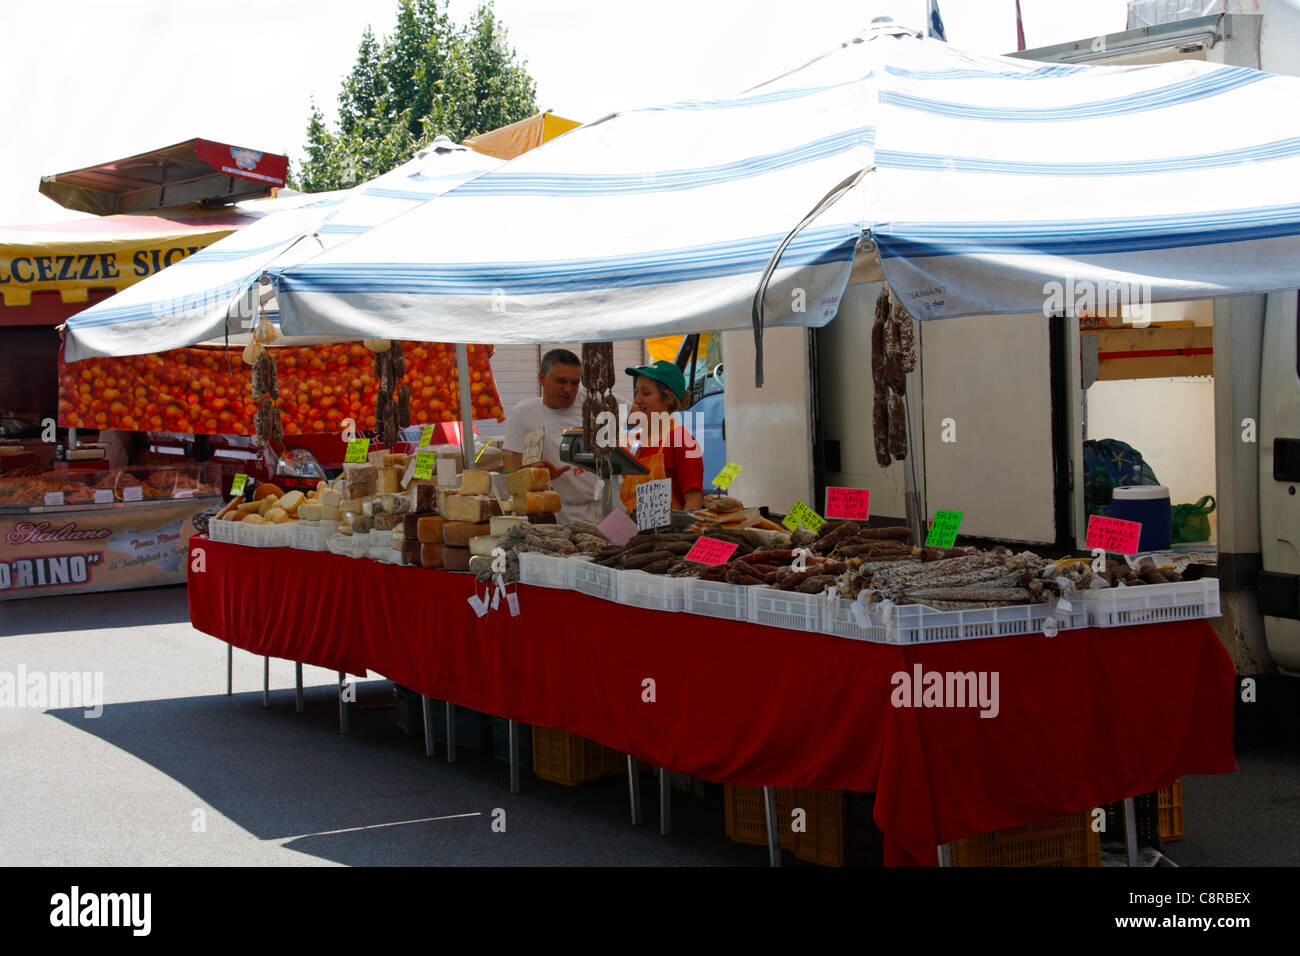 Italian outdoor food market stall Arona Italy & Italian outdoor food market stall Arona Italy Stock Photo ...